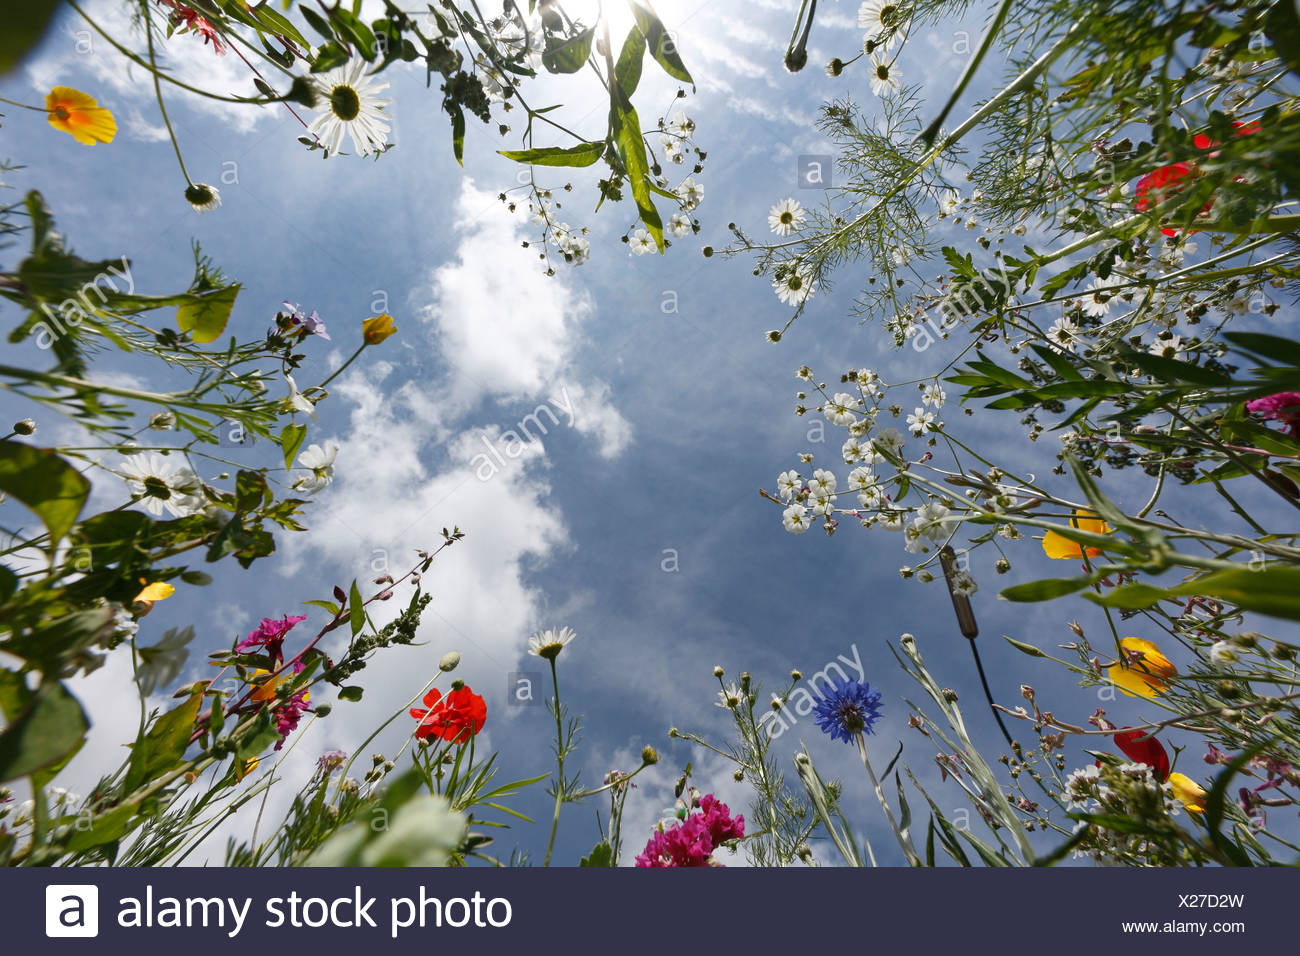 Worms eye view of a flower meadow, Germany - Stock Image